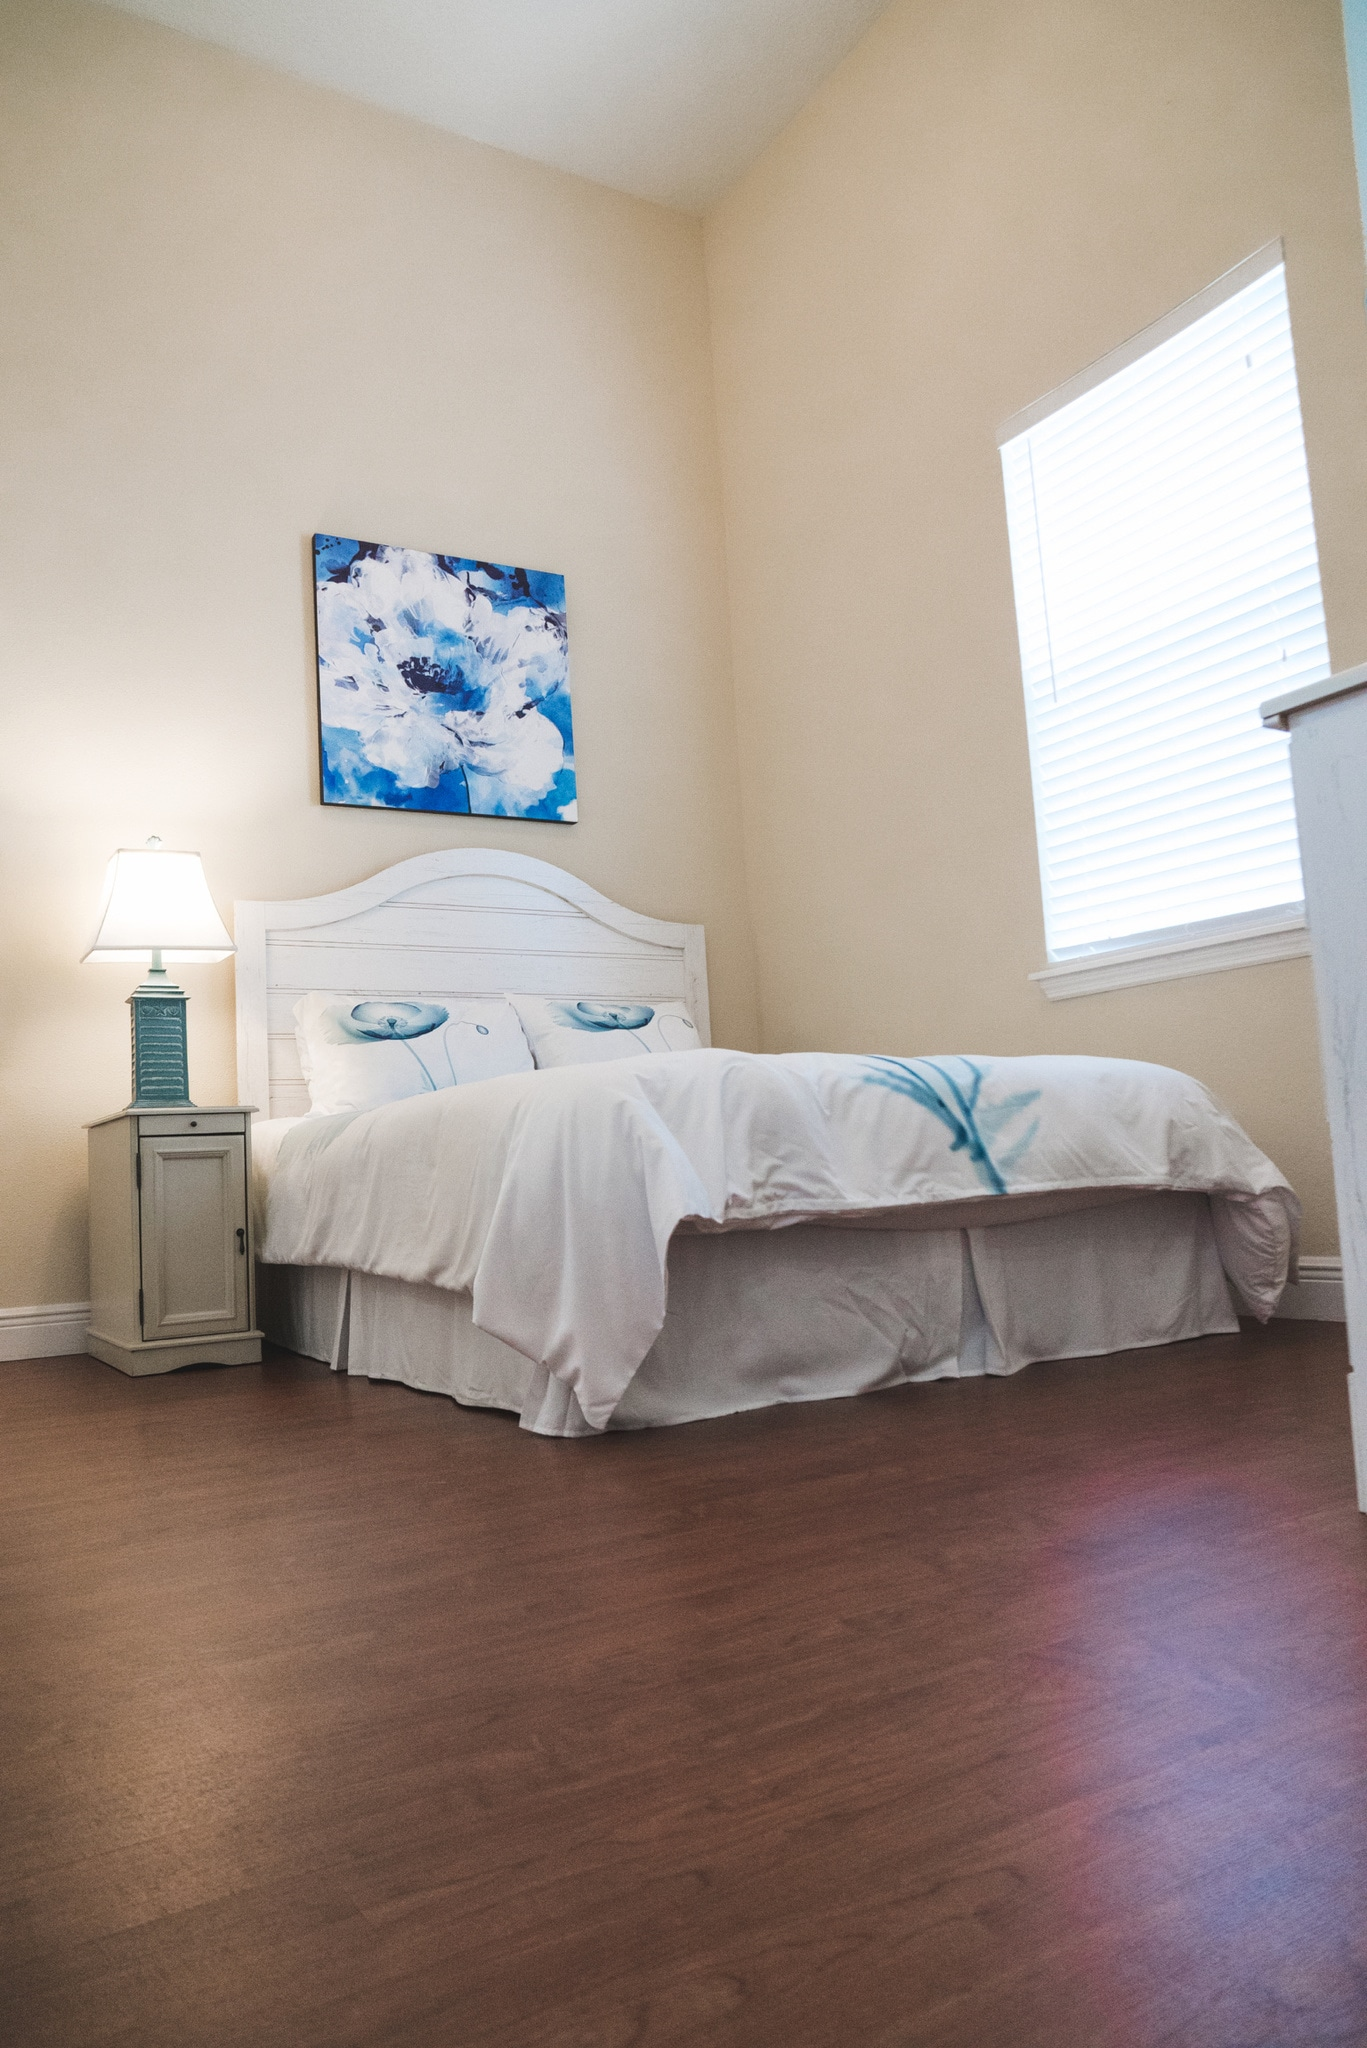 This model bedroom at Angels Senior Living at Sarasota shows off our spacious private and semi-private assisted living rooms.